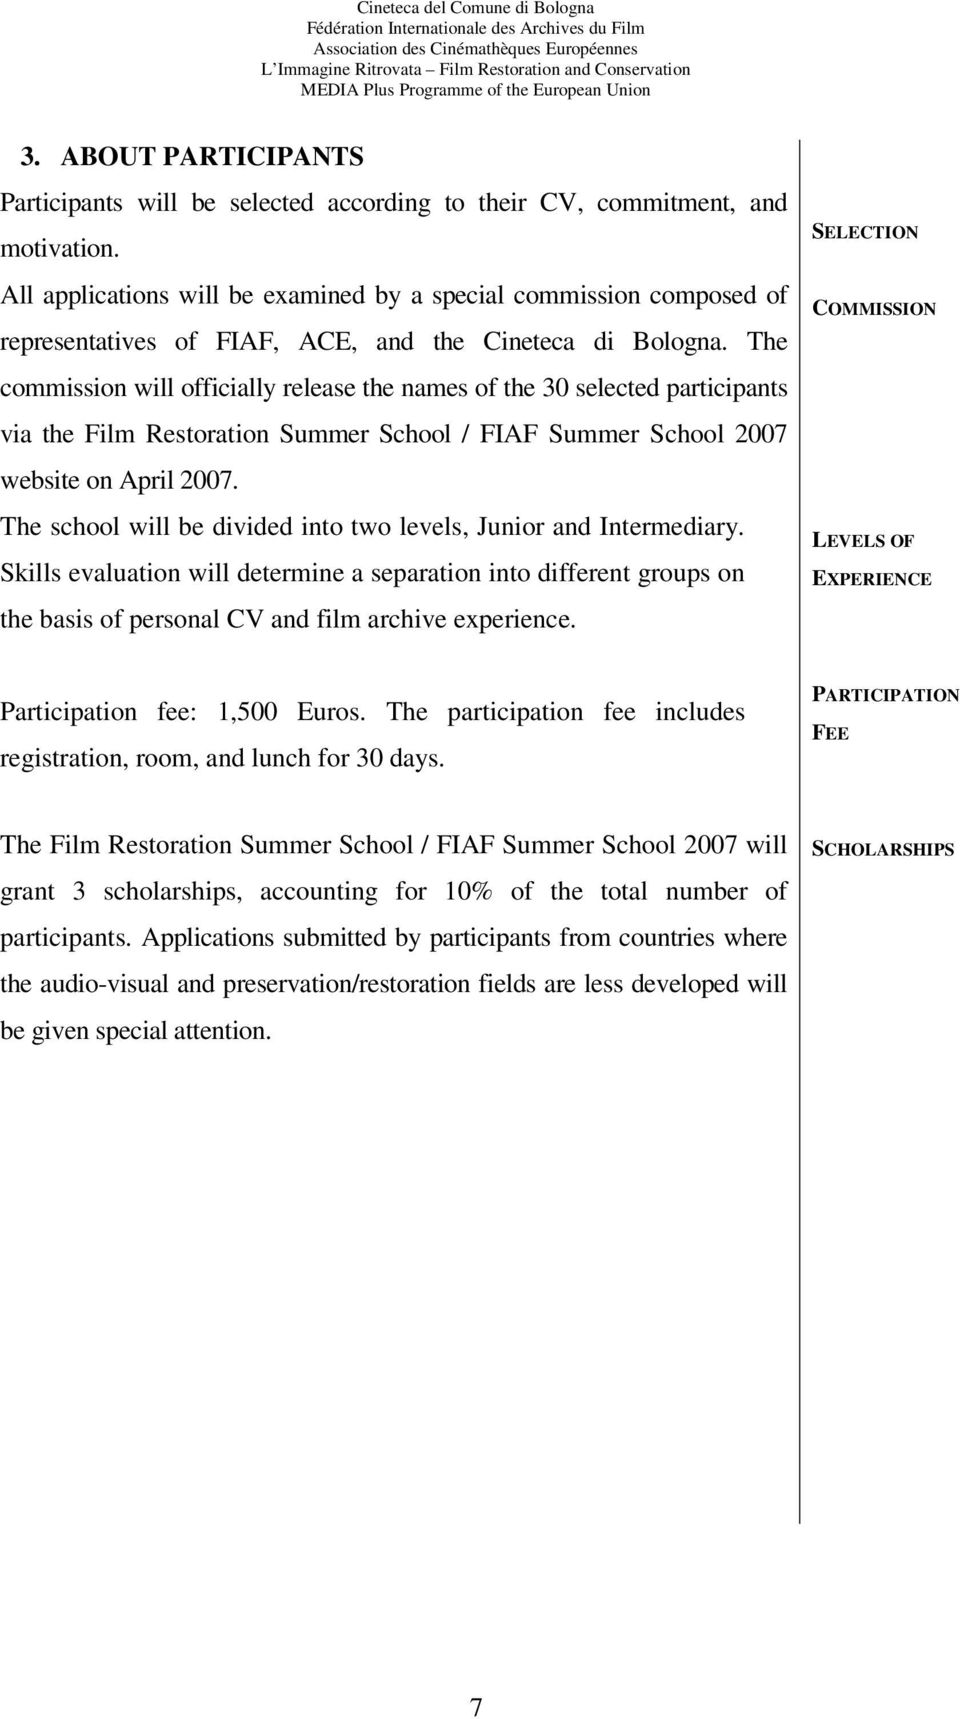 The commission will officially release the names of the 30 selected participants via the Film Restoration Summer School / FIAF Summer School 2007 website on April 2007.